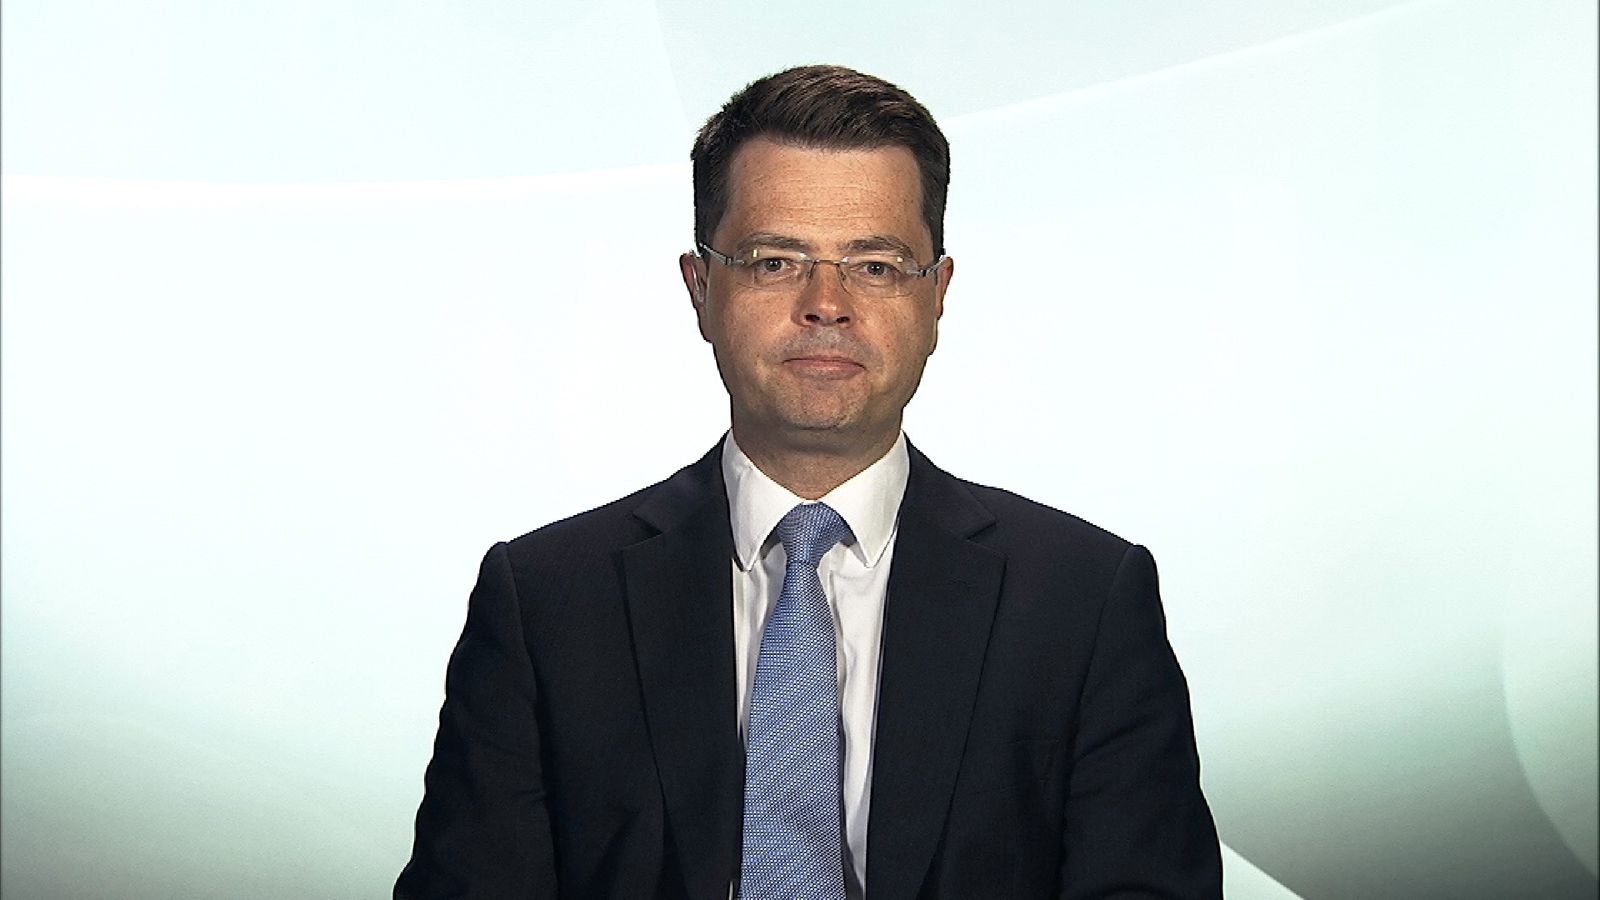 Northern Ireland Secretary James Brokenshire in Millbank studio.